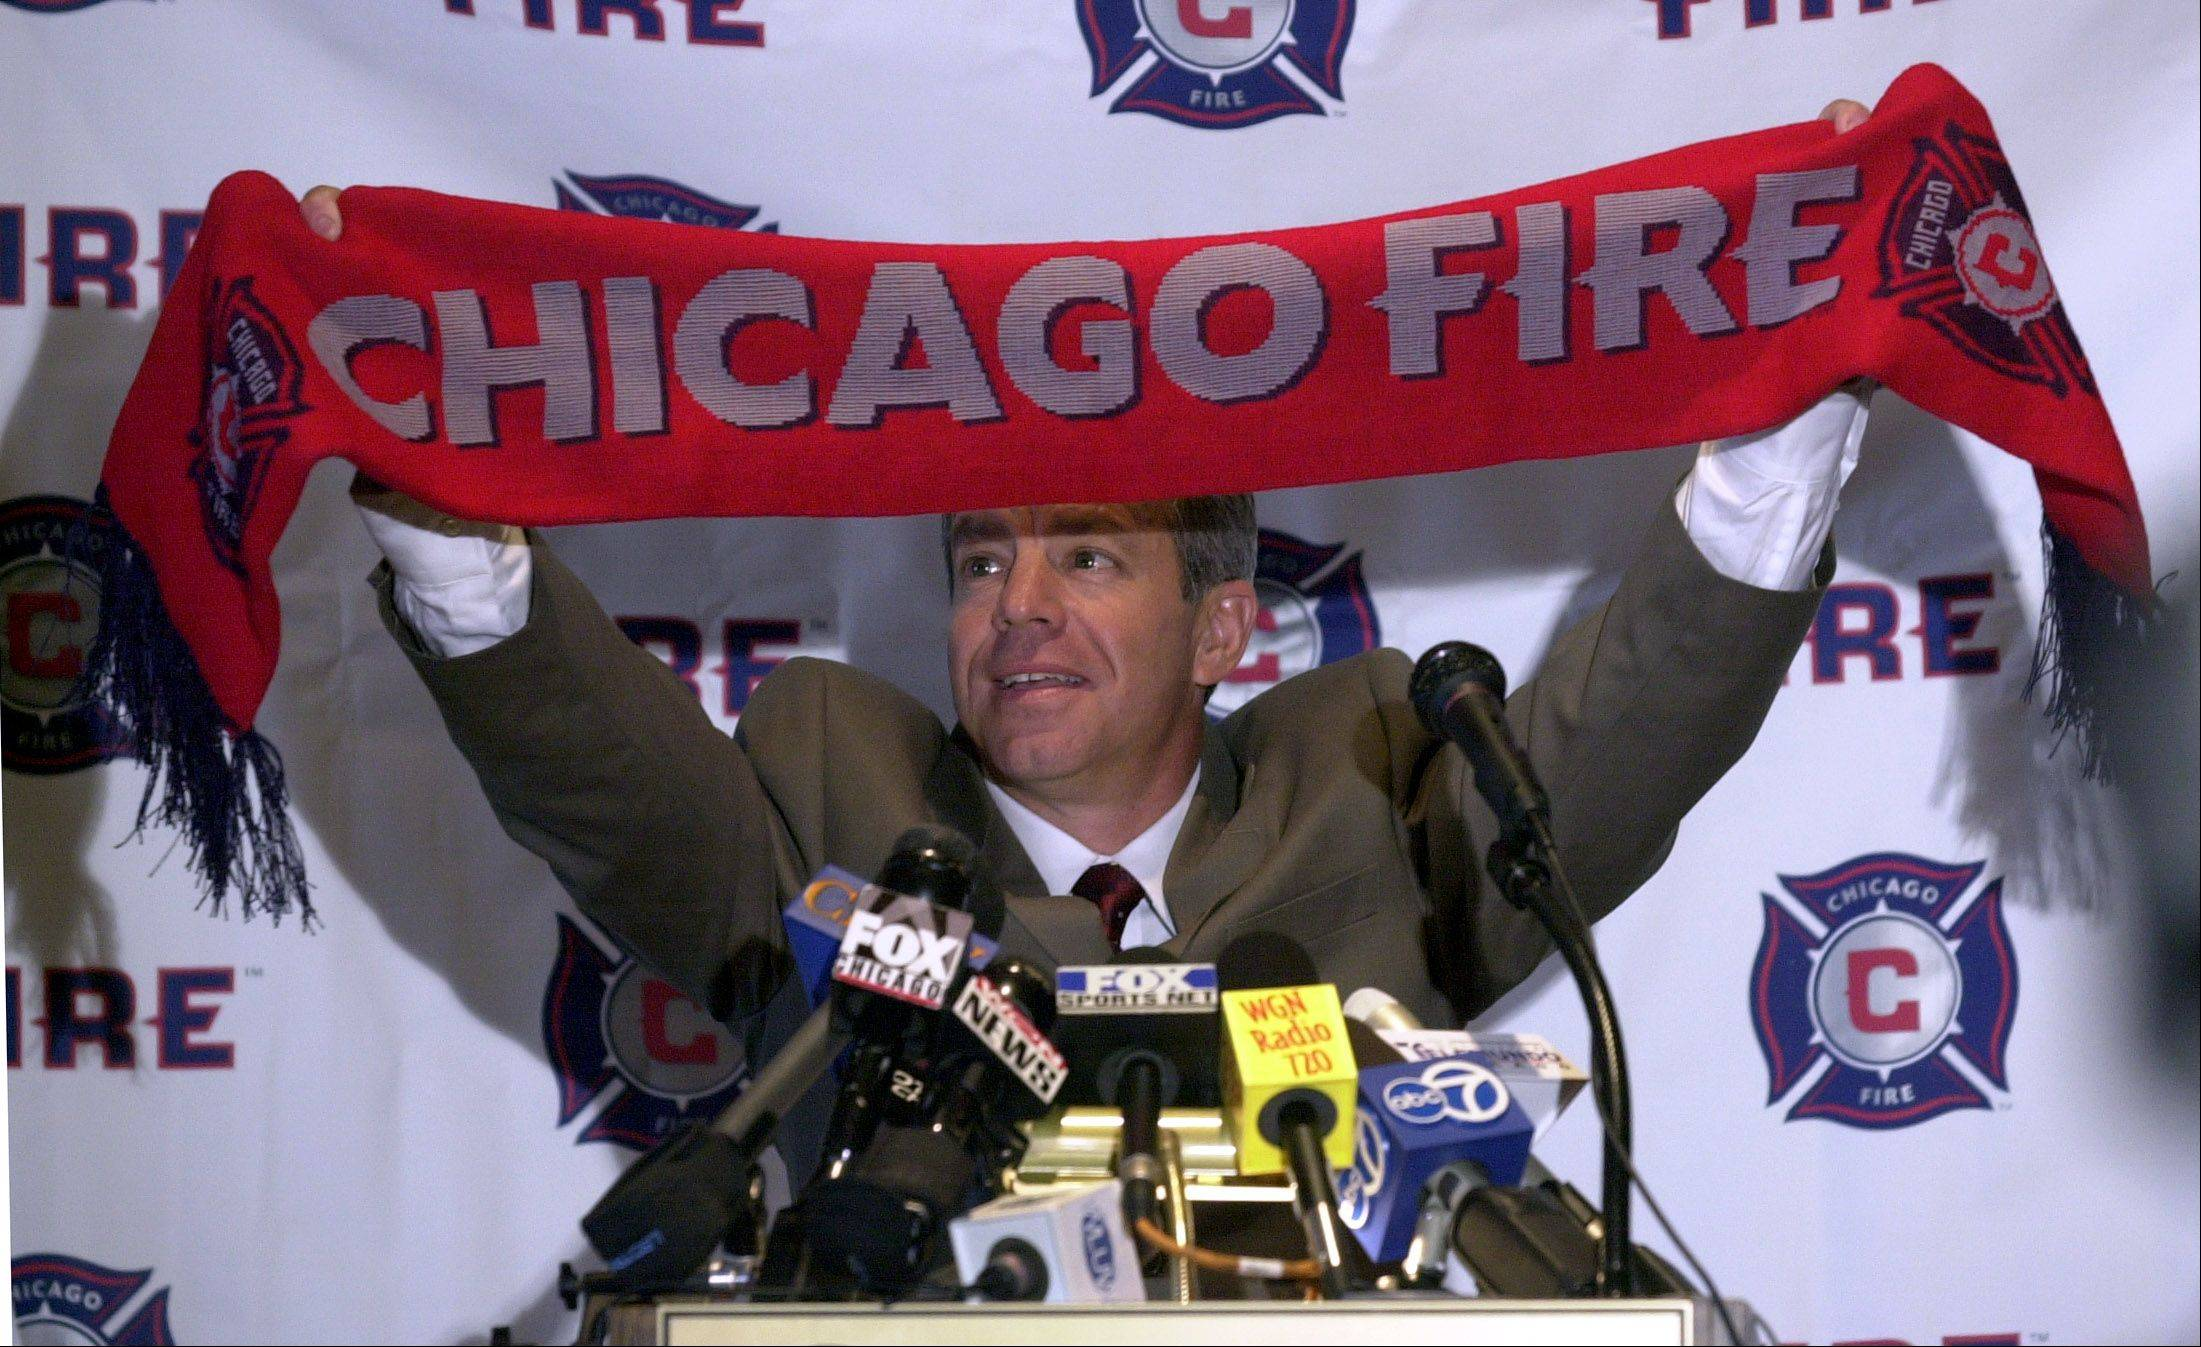 Newly-named Chicago Fire Head Coach Dave Sarachan holds up a scarf at the press conference to announce his appointment.